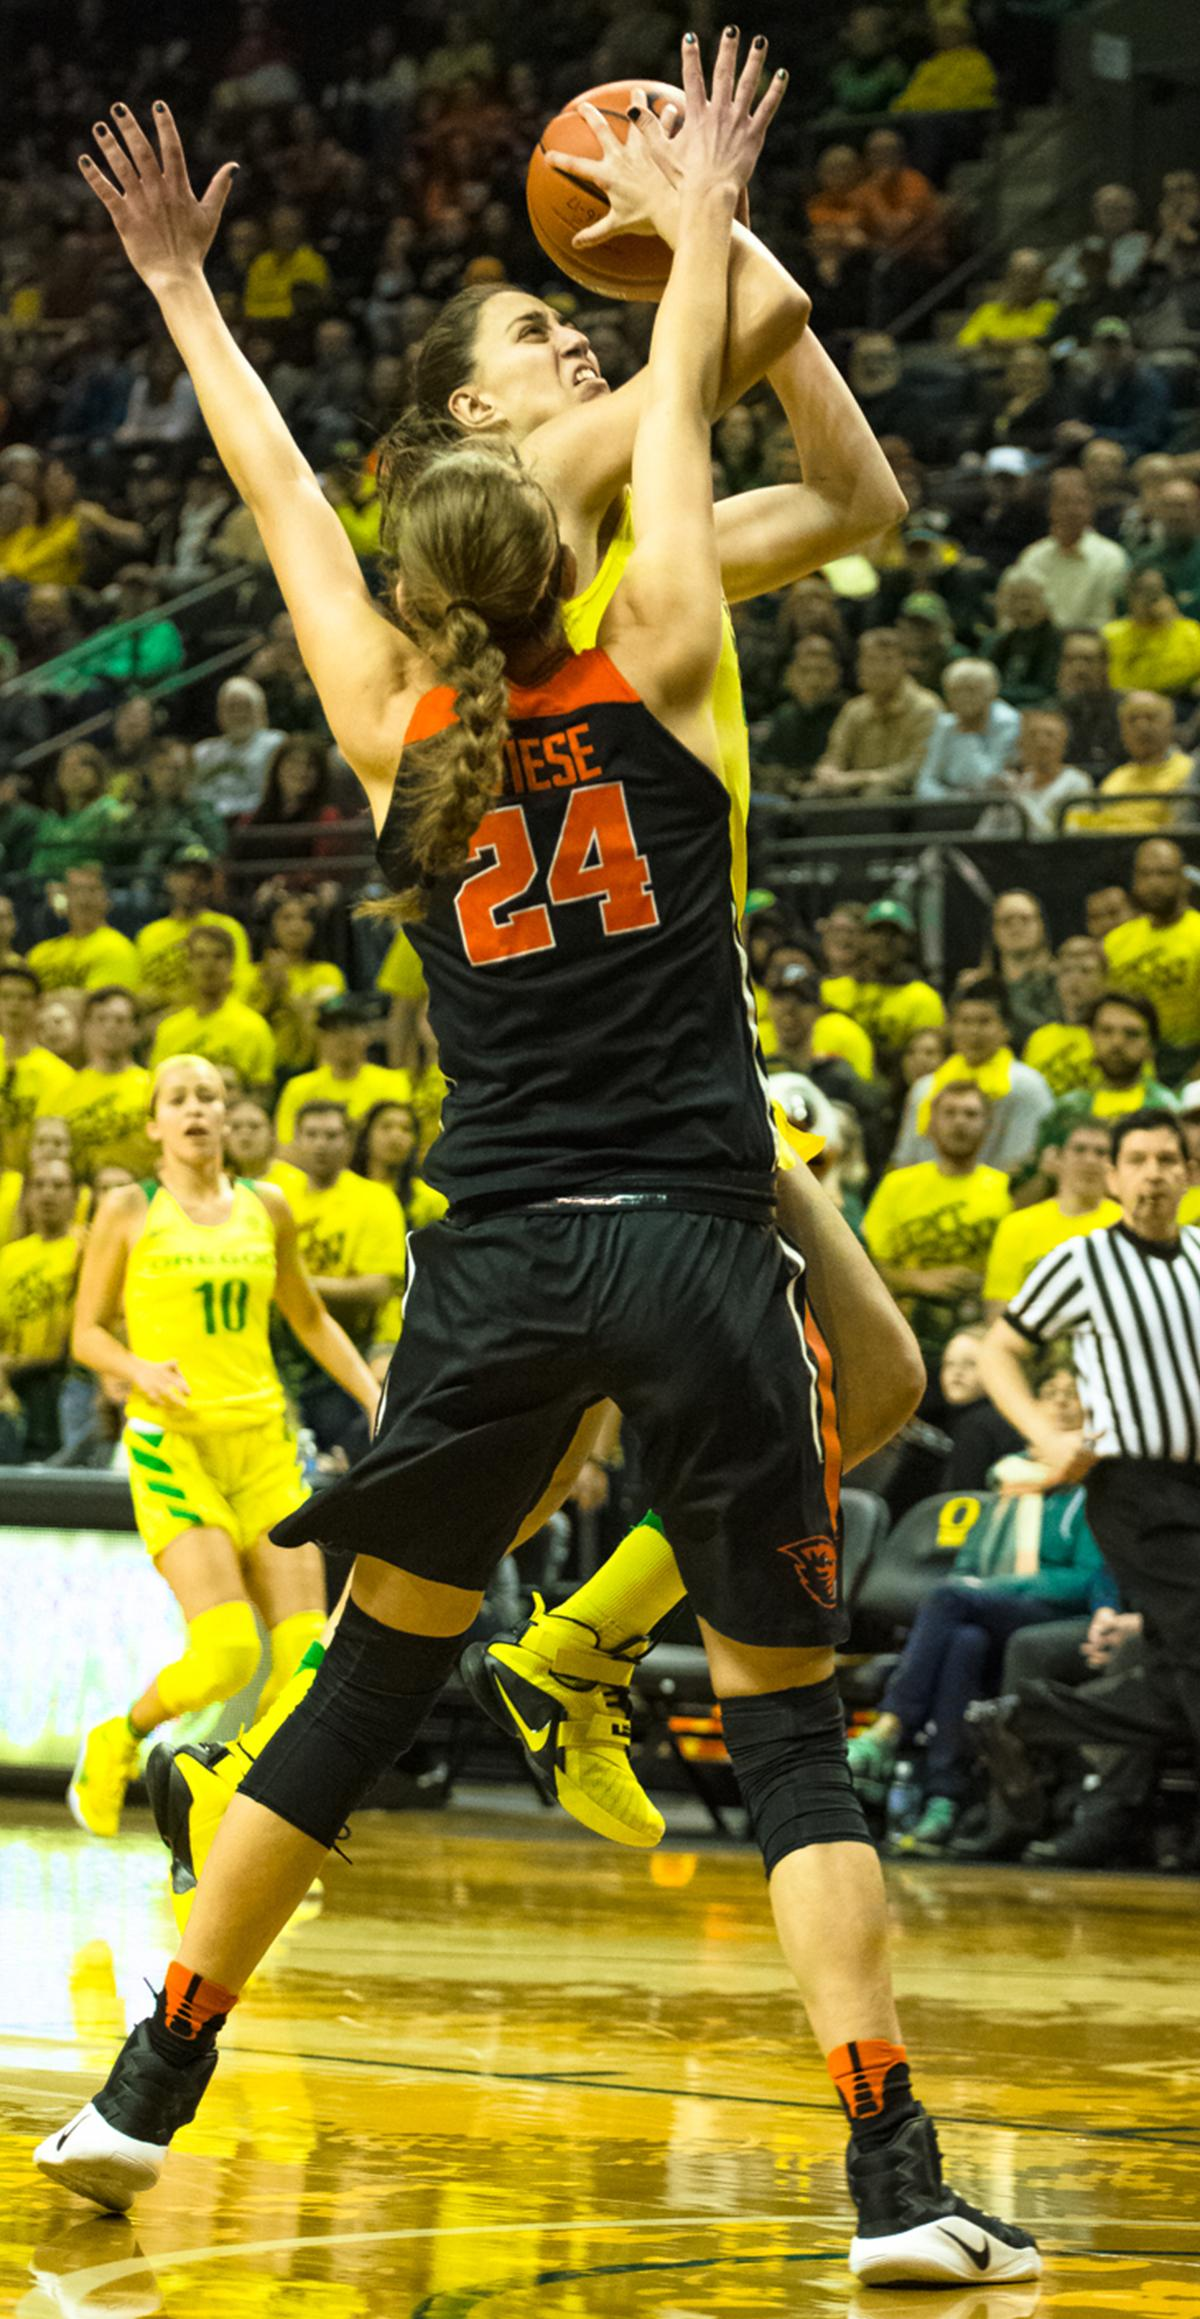 Oregon Ducks Guard Maite Cazorla (#5) goes up for a layup against Oregon State Guard Sydney Wiese (#24). Oregon Ducks lost 40-43 to Oregon State Beavers in a tightly matched fourth quarter. Photo by Jonathan Booker, Oregon News Lab